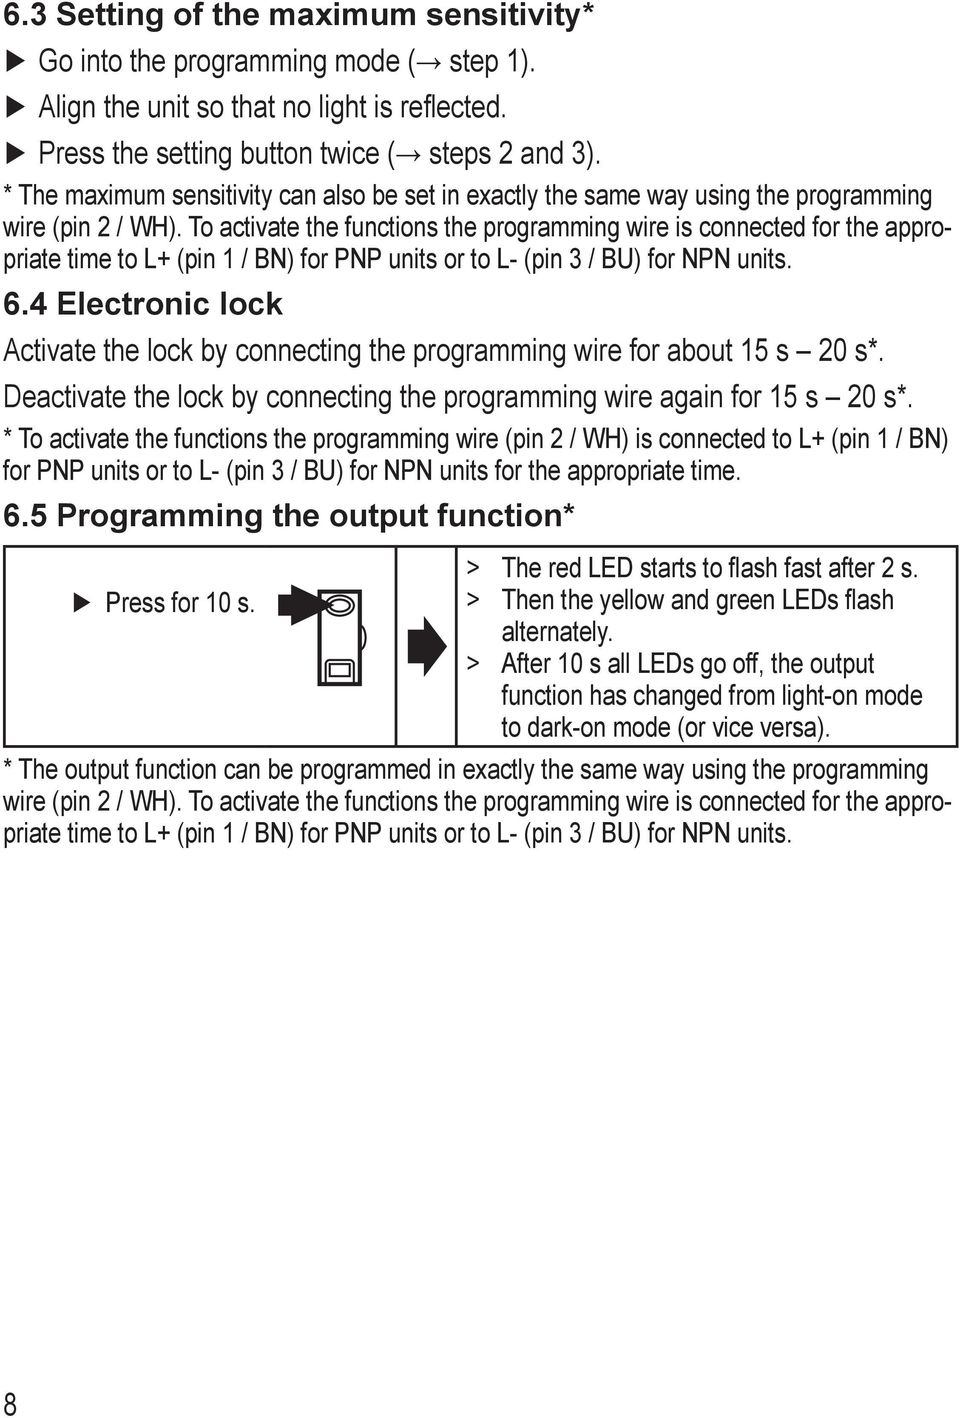 To activate the functions the programming wire is connected for the appropriate time to L+ (pin / BN) for PNP units or to L- (pin / BU) for NPN units. 6.